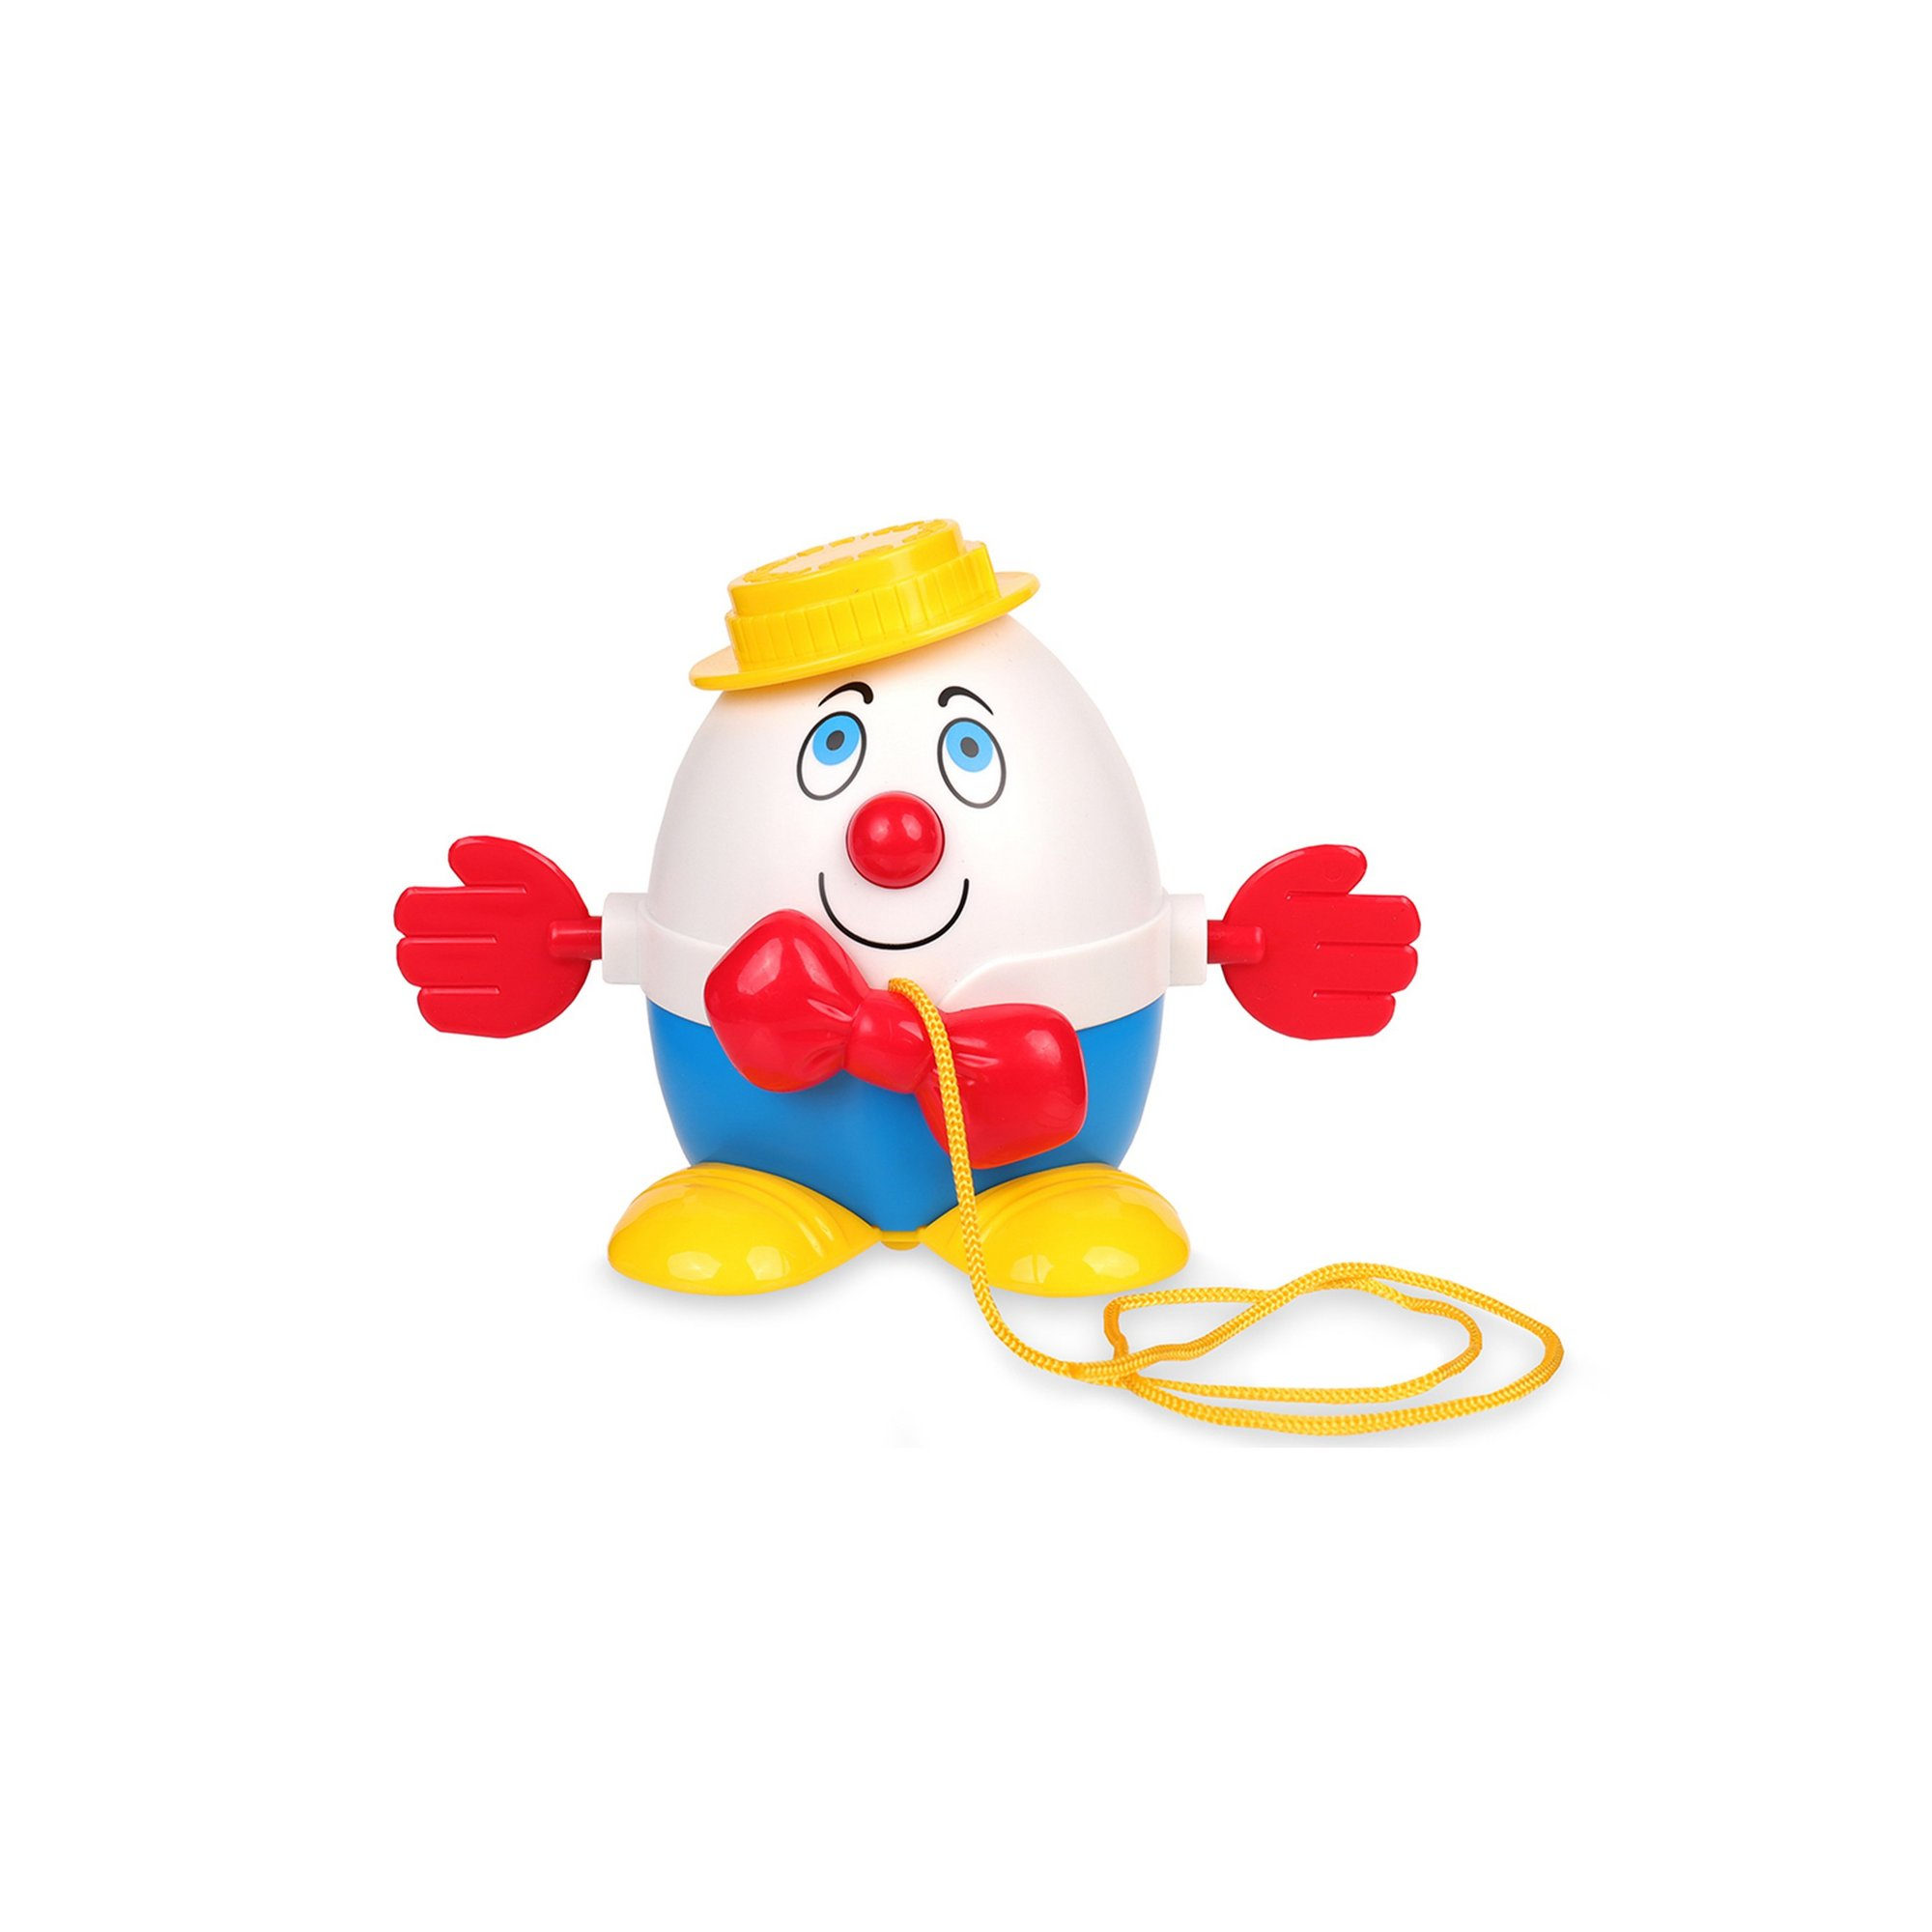 Image of Fisher Price Classic Humpty Dumpty Pull and Walk